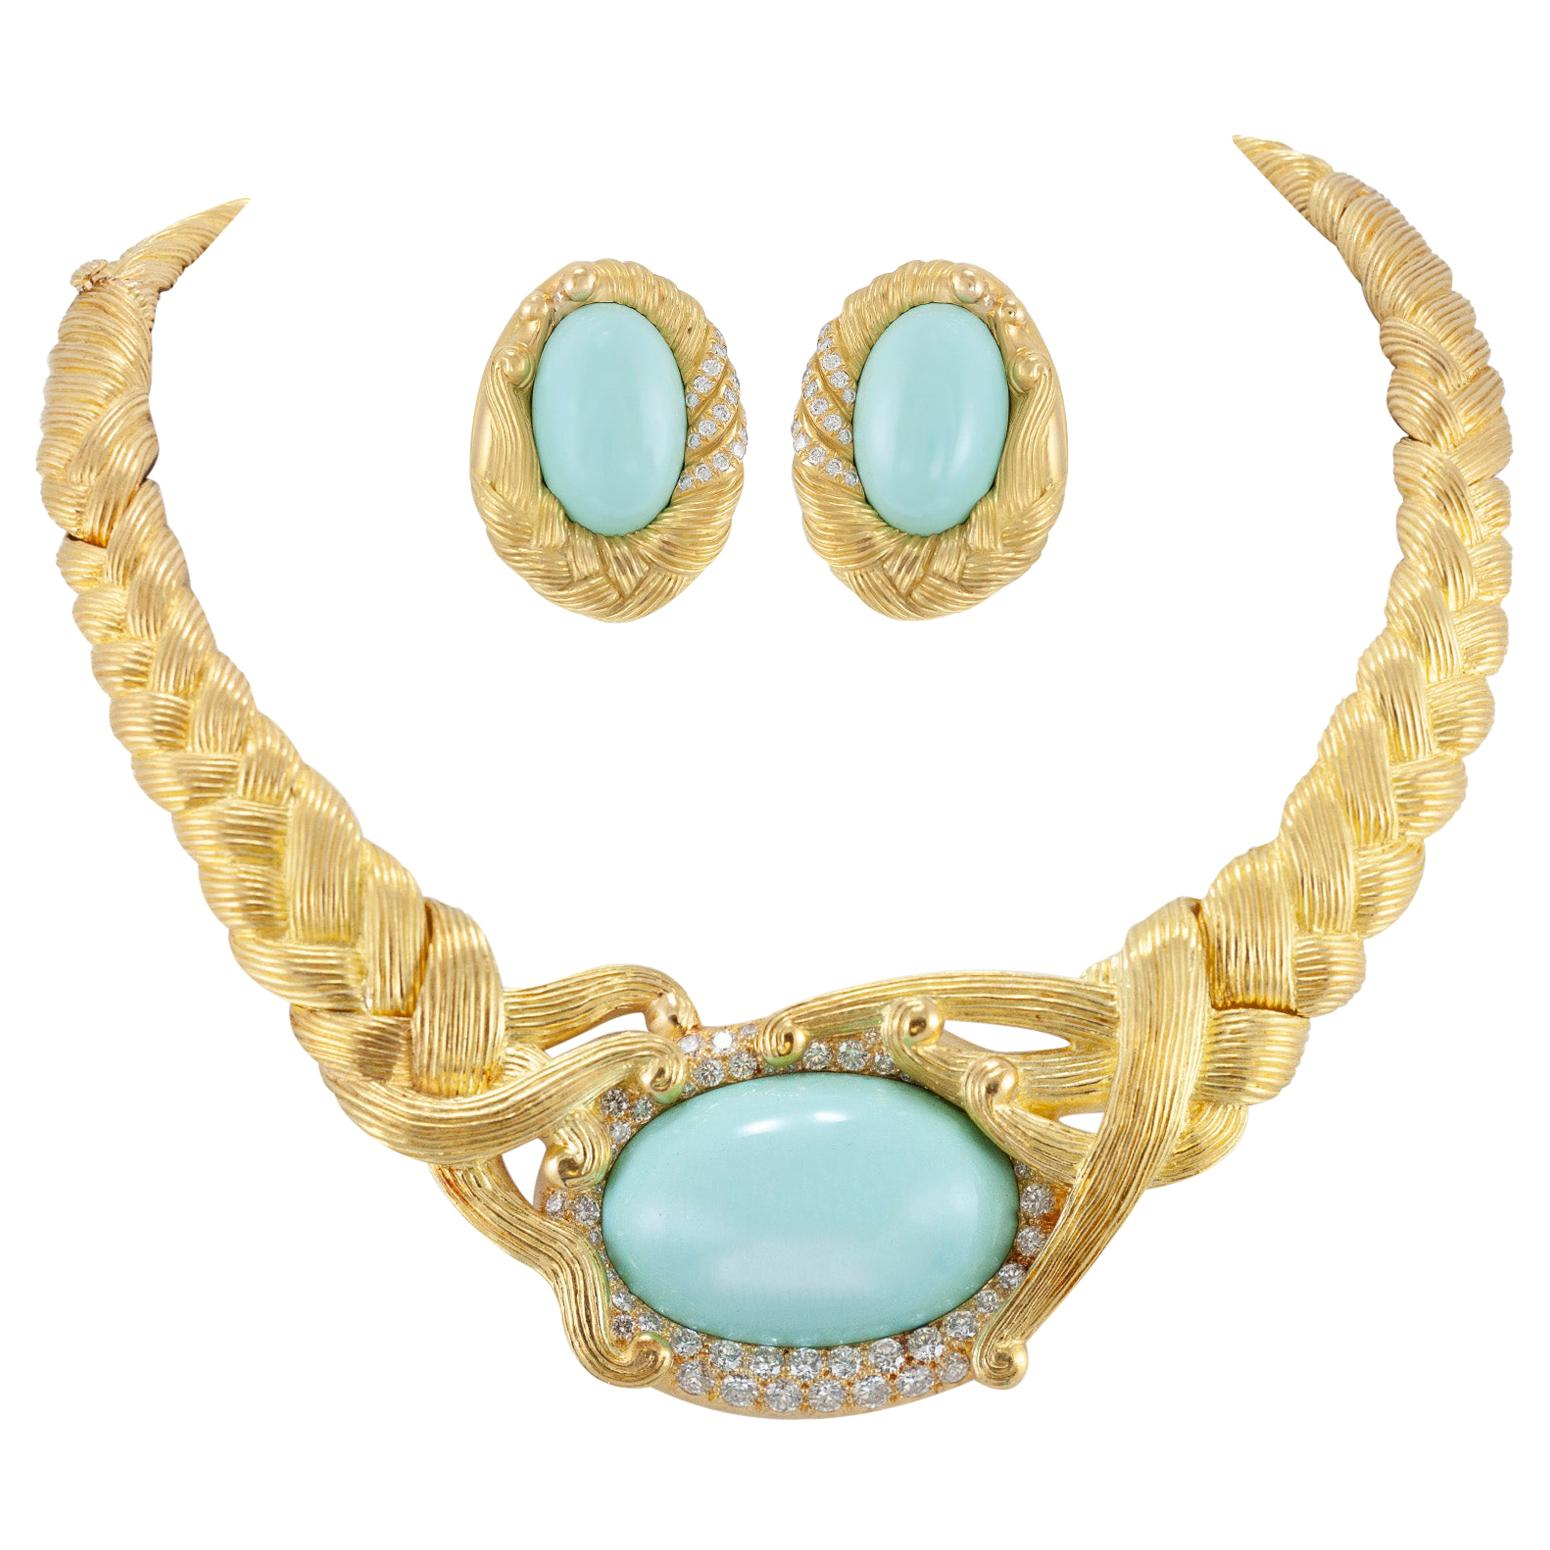 1970s Tiffany & Co Angela Cummings Collection Turquoise and Diamond Set